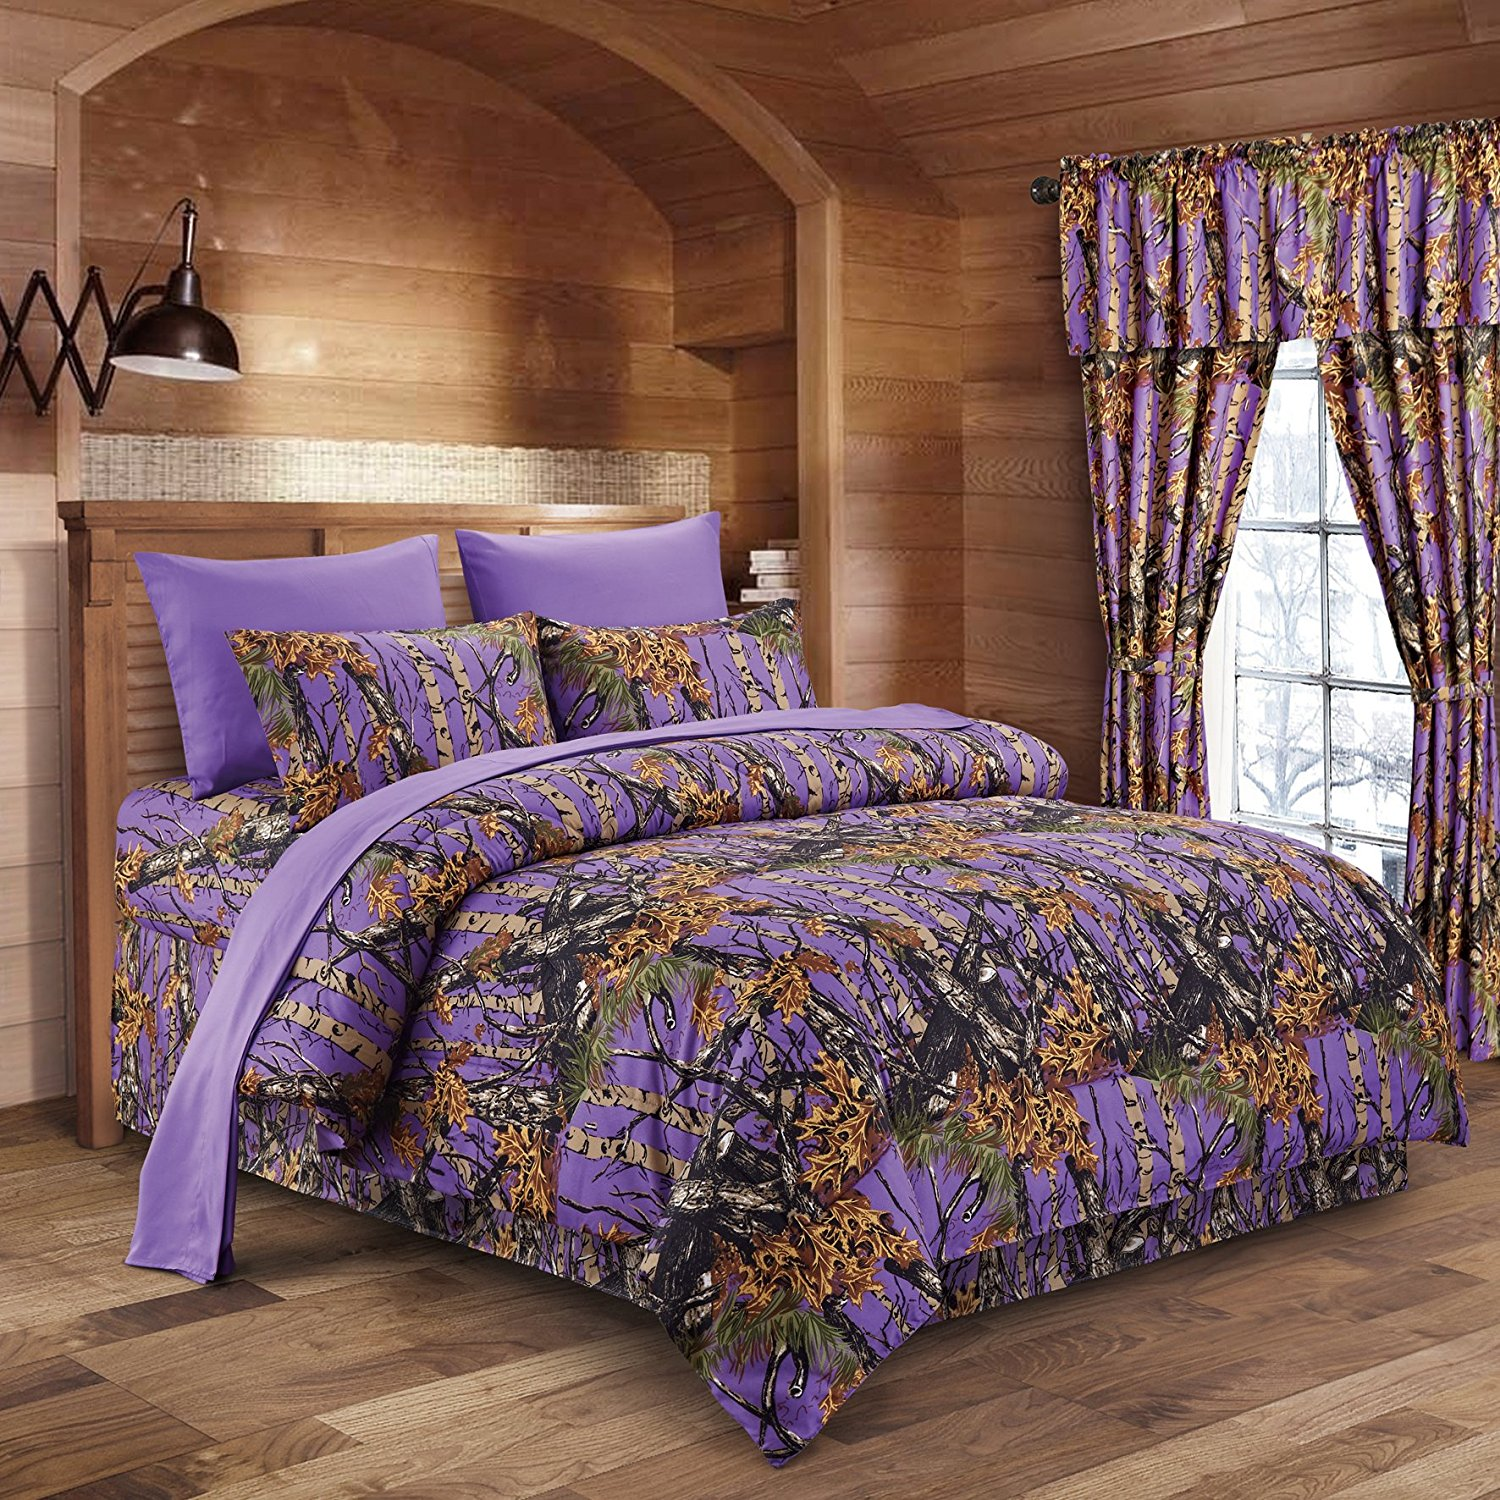 The Woods Purple Camouflage King 8pc Premium Luxury Comforter, Sheet, Pillowcases, and Bed Skirt Set by Regal Comfort Camo Bedding Set For Hunters Cabin or Rustic Lodge Teens Boys and Girls